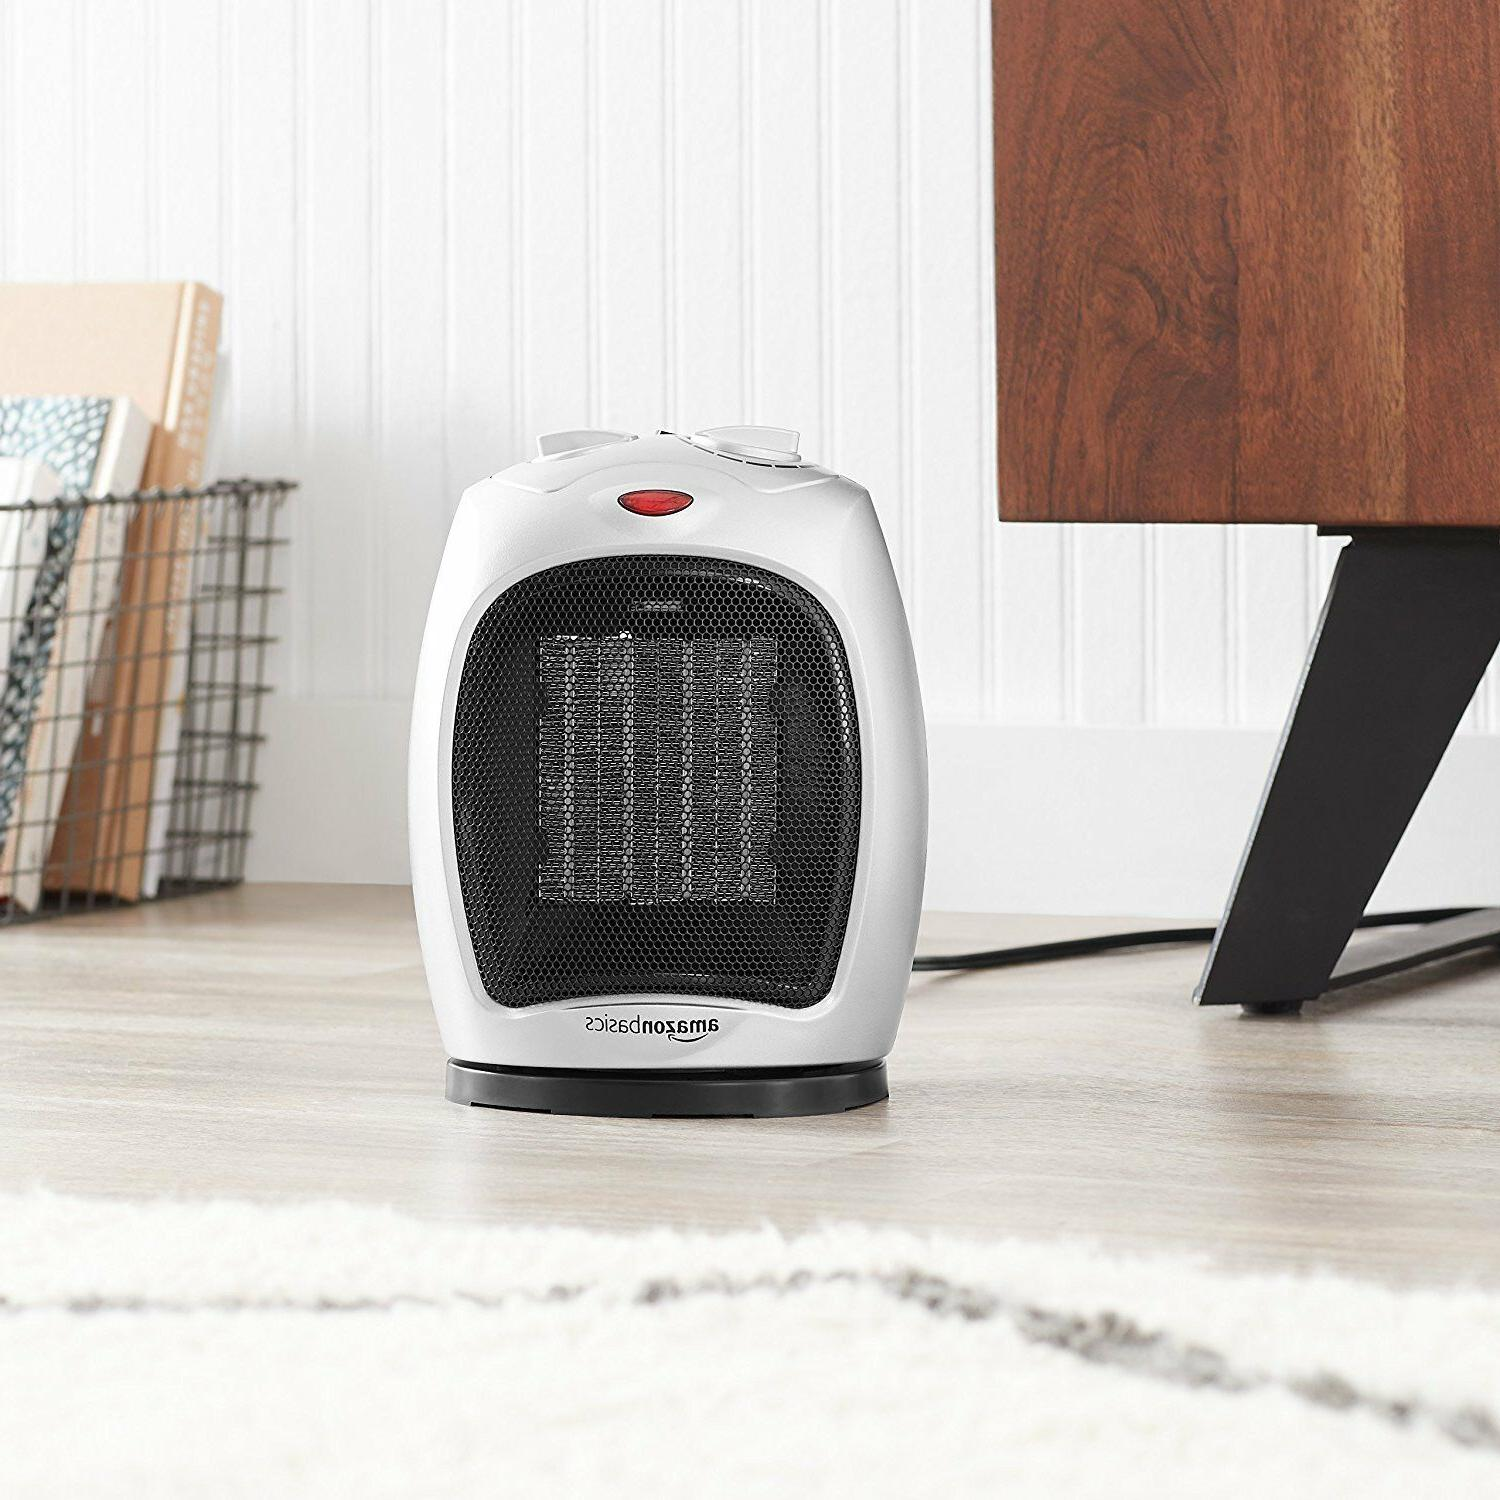 AmazonBasics 1500 Watt Oscillating Ceramic Space Heater Adjustable